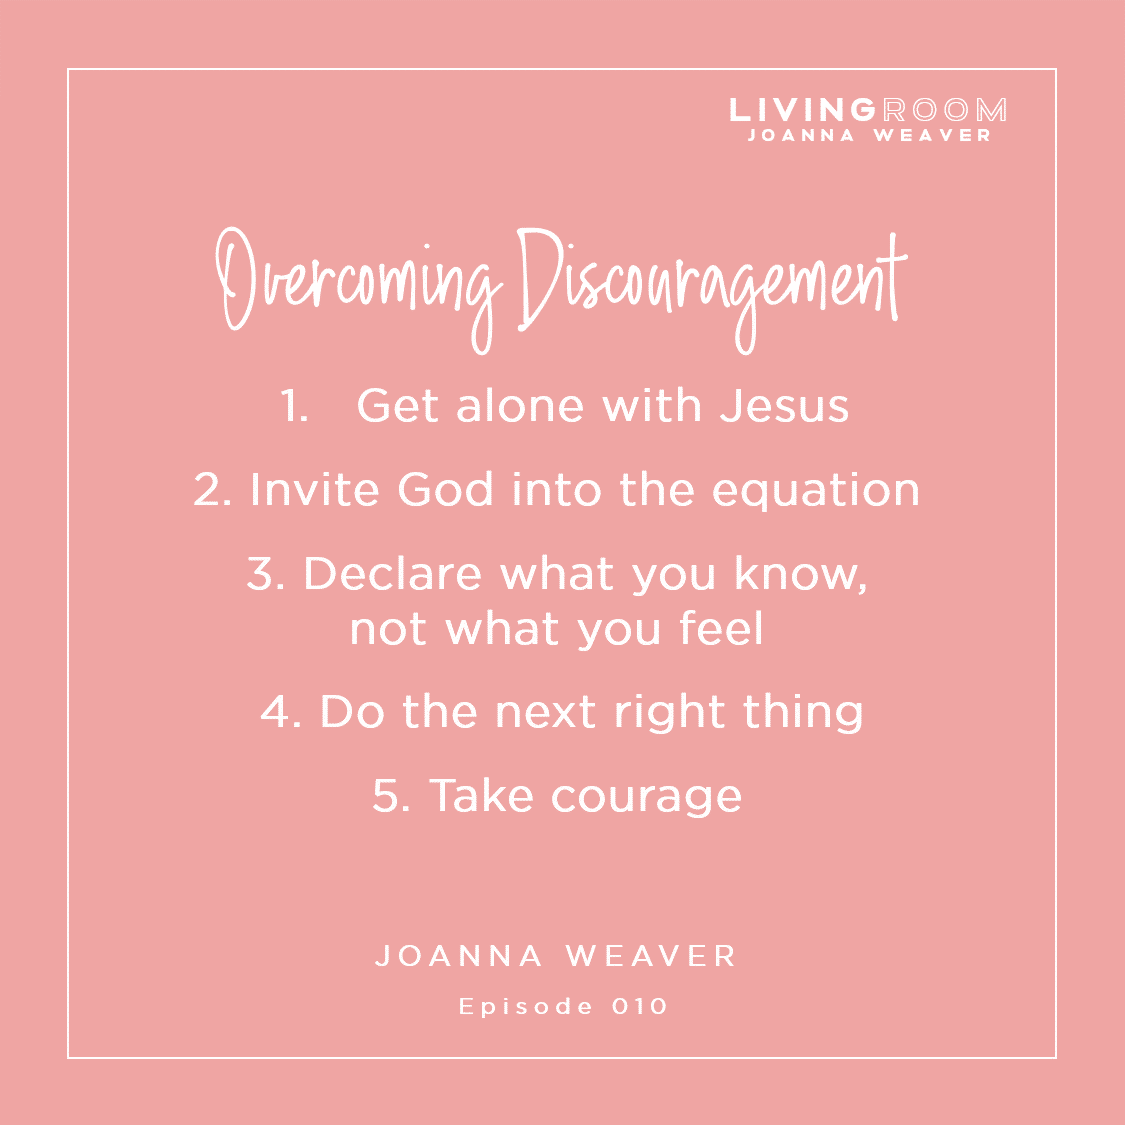 Five ways to overcome discouragement - Joanna Weaver - The Living Room Podcast #010